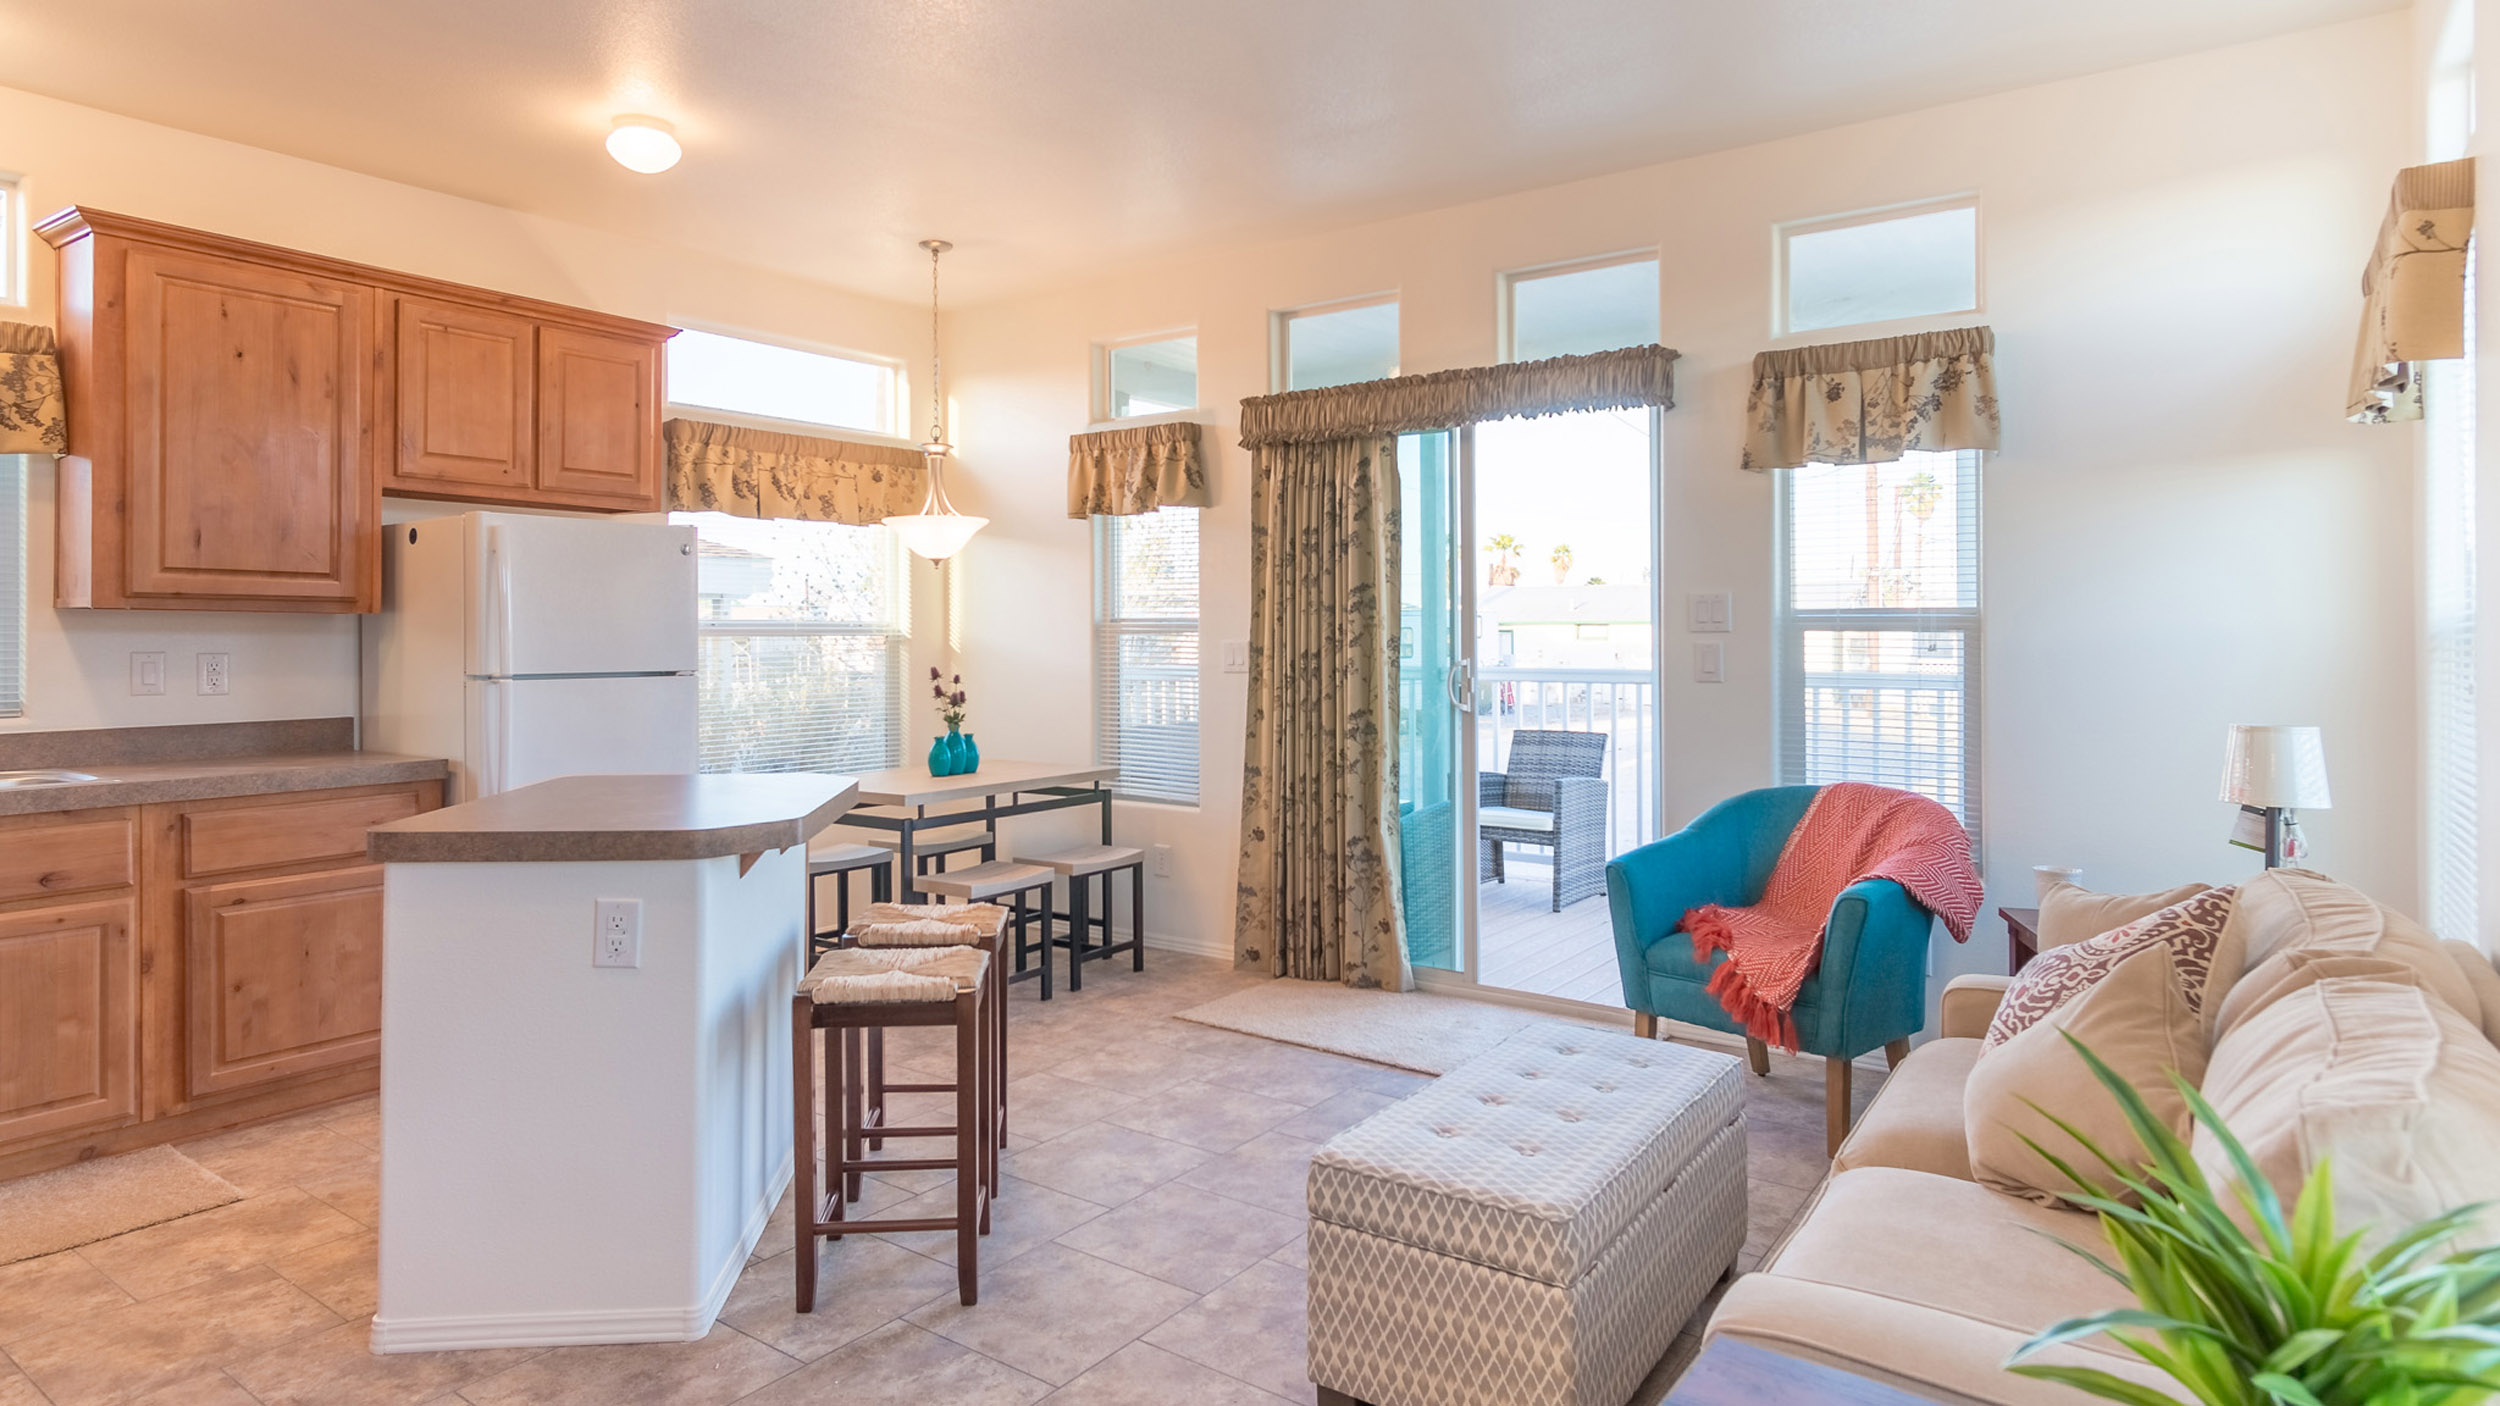 Large River Home Rentals — $209+ - If you need a couple extra bedrooms, try one of our fully furnished river vacation home rentals. Daily rates start at $209.